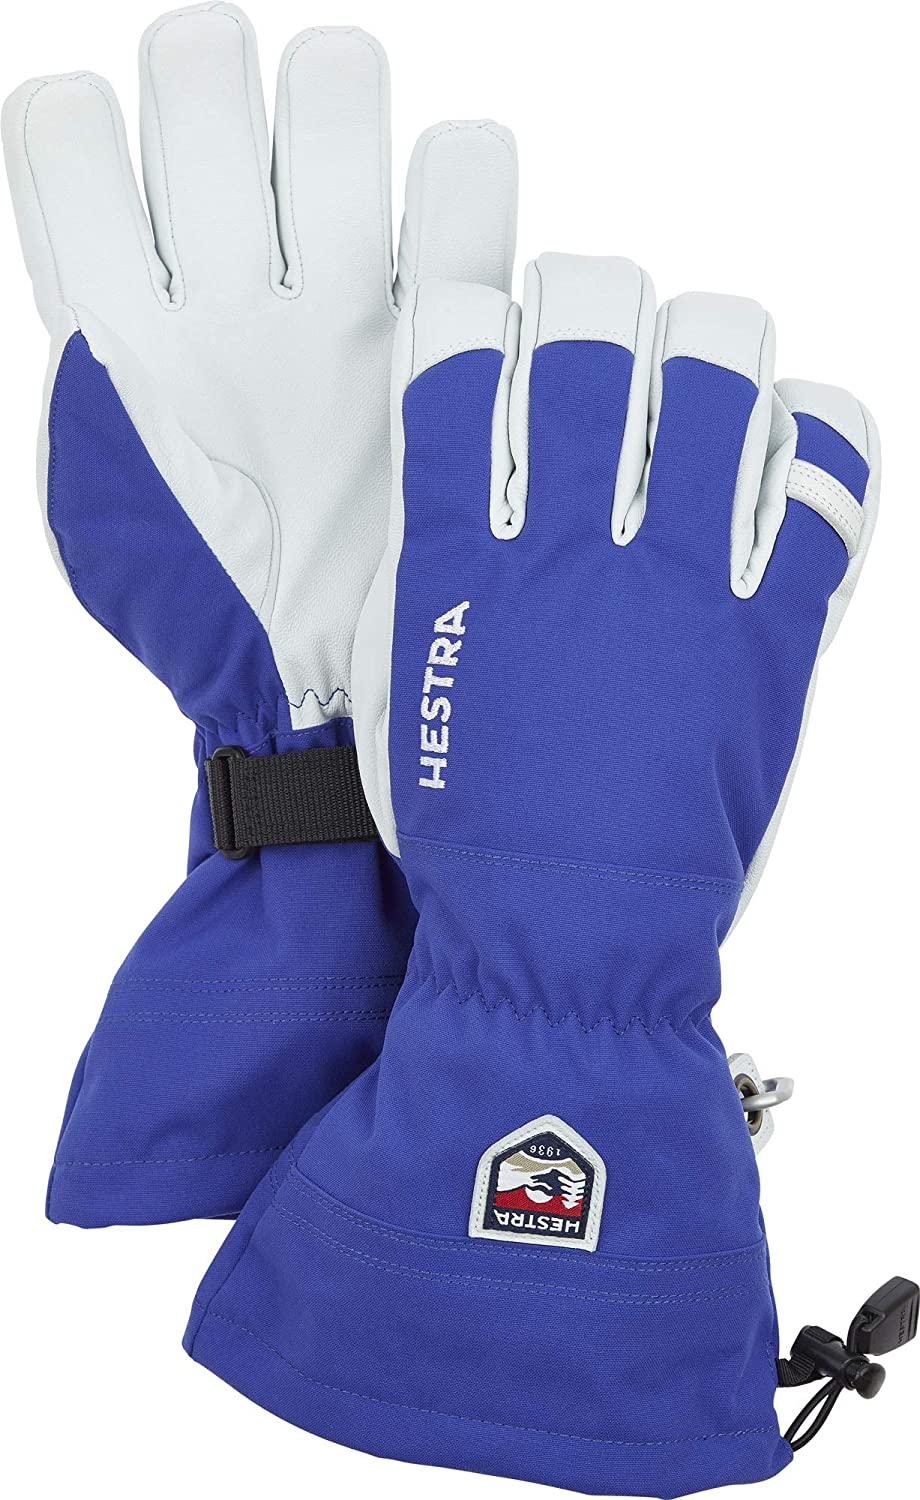 Under blast sales Hestra Army Leather Heli Ski Cheap mail order shopping 5-Finger - Classic Glove Snow